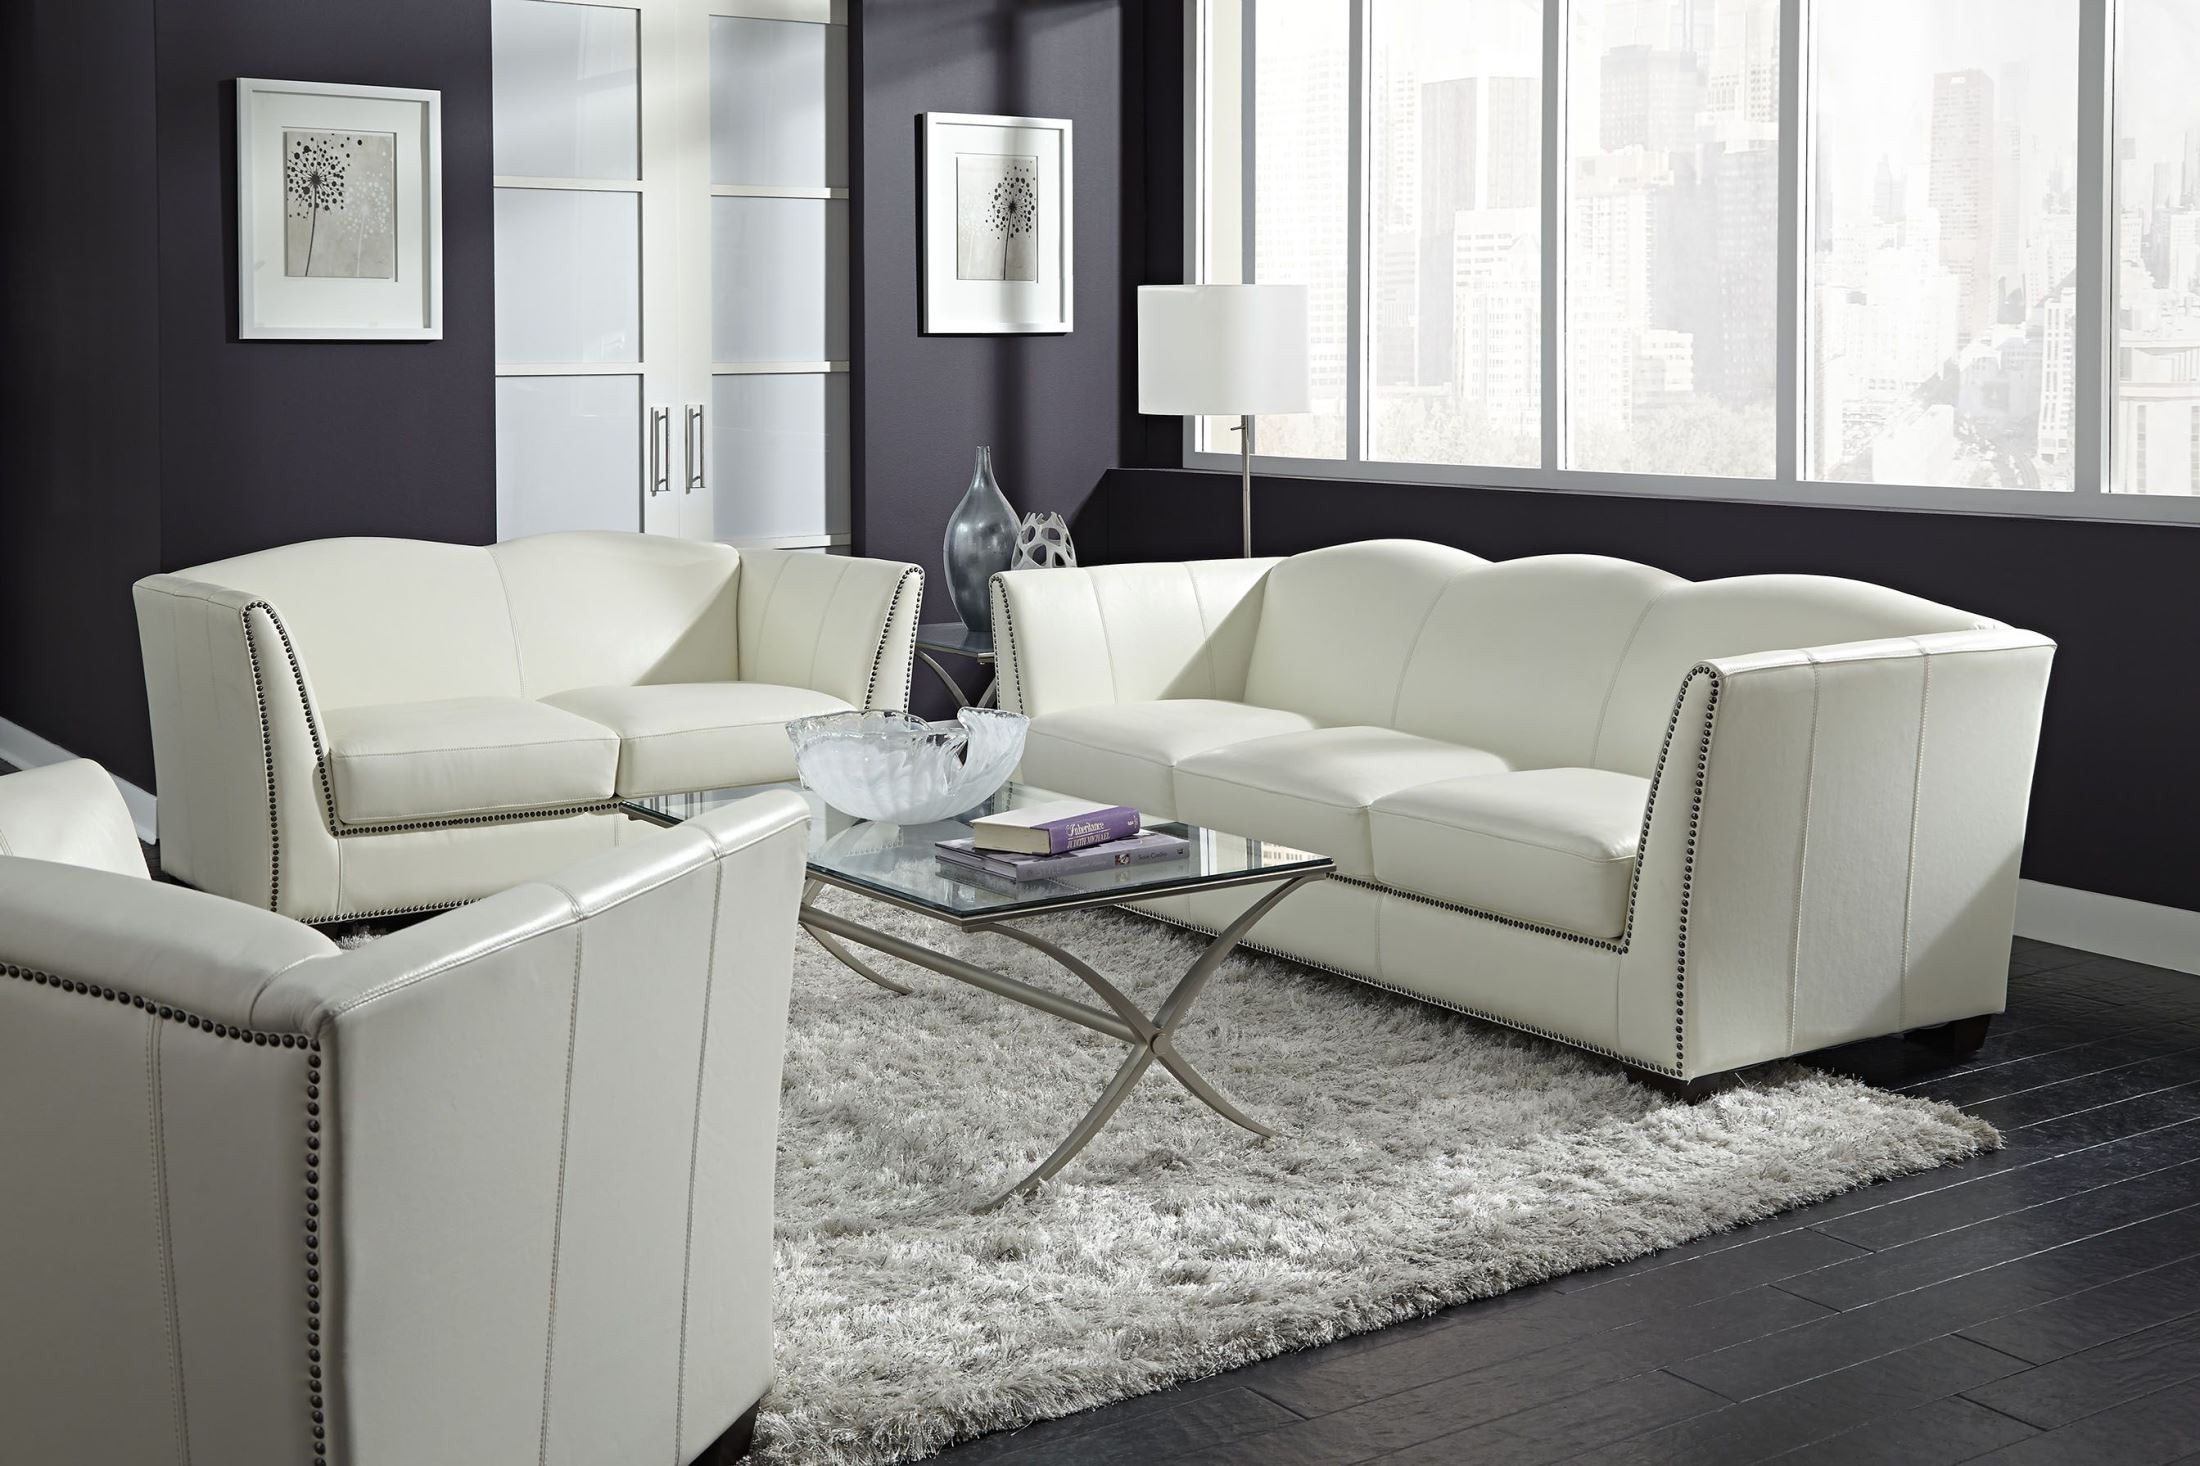 White Leather Living Room Set Tekir Contemporary White Living Room Set With Bonded Leather